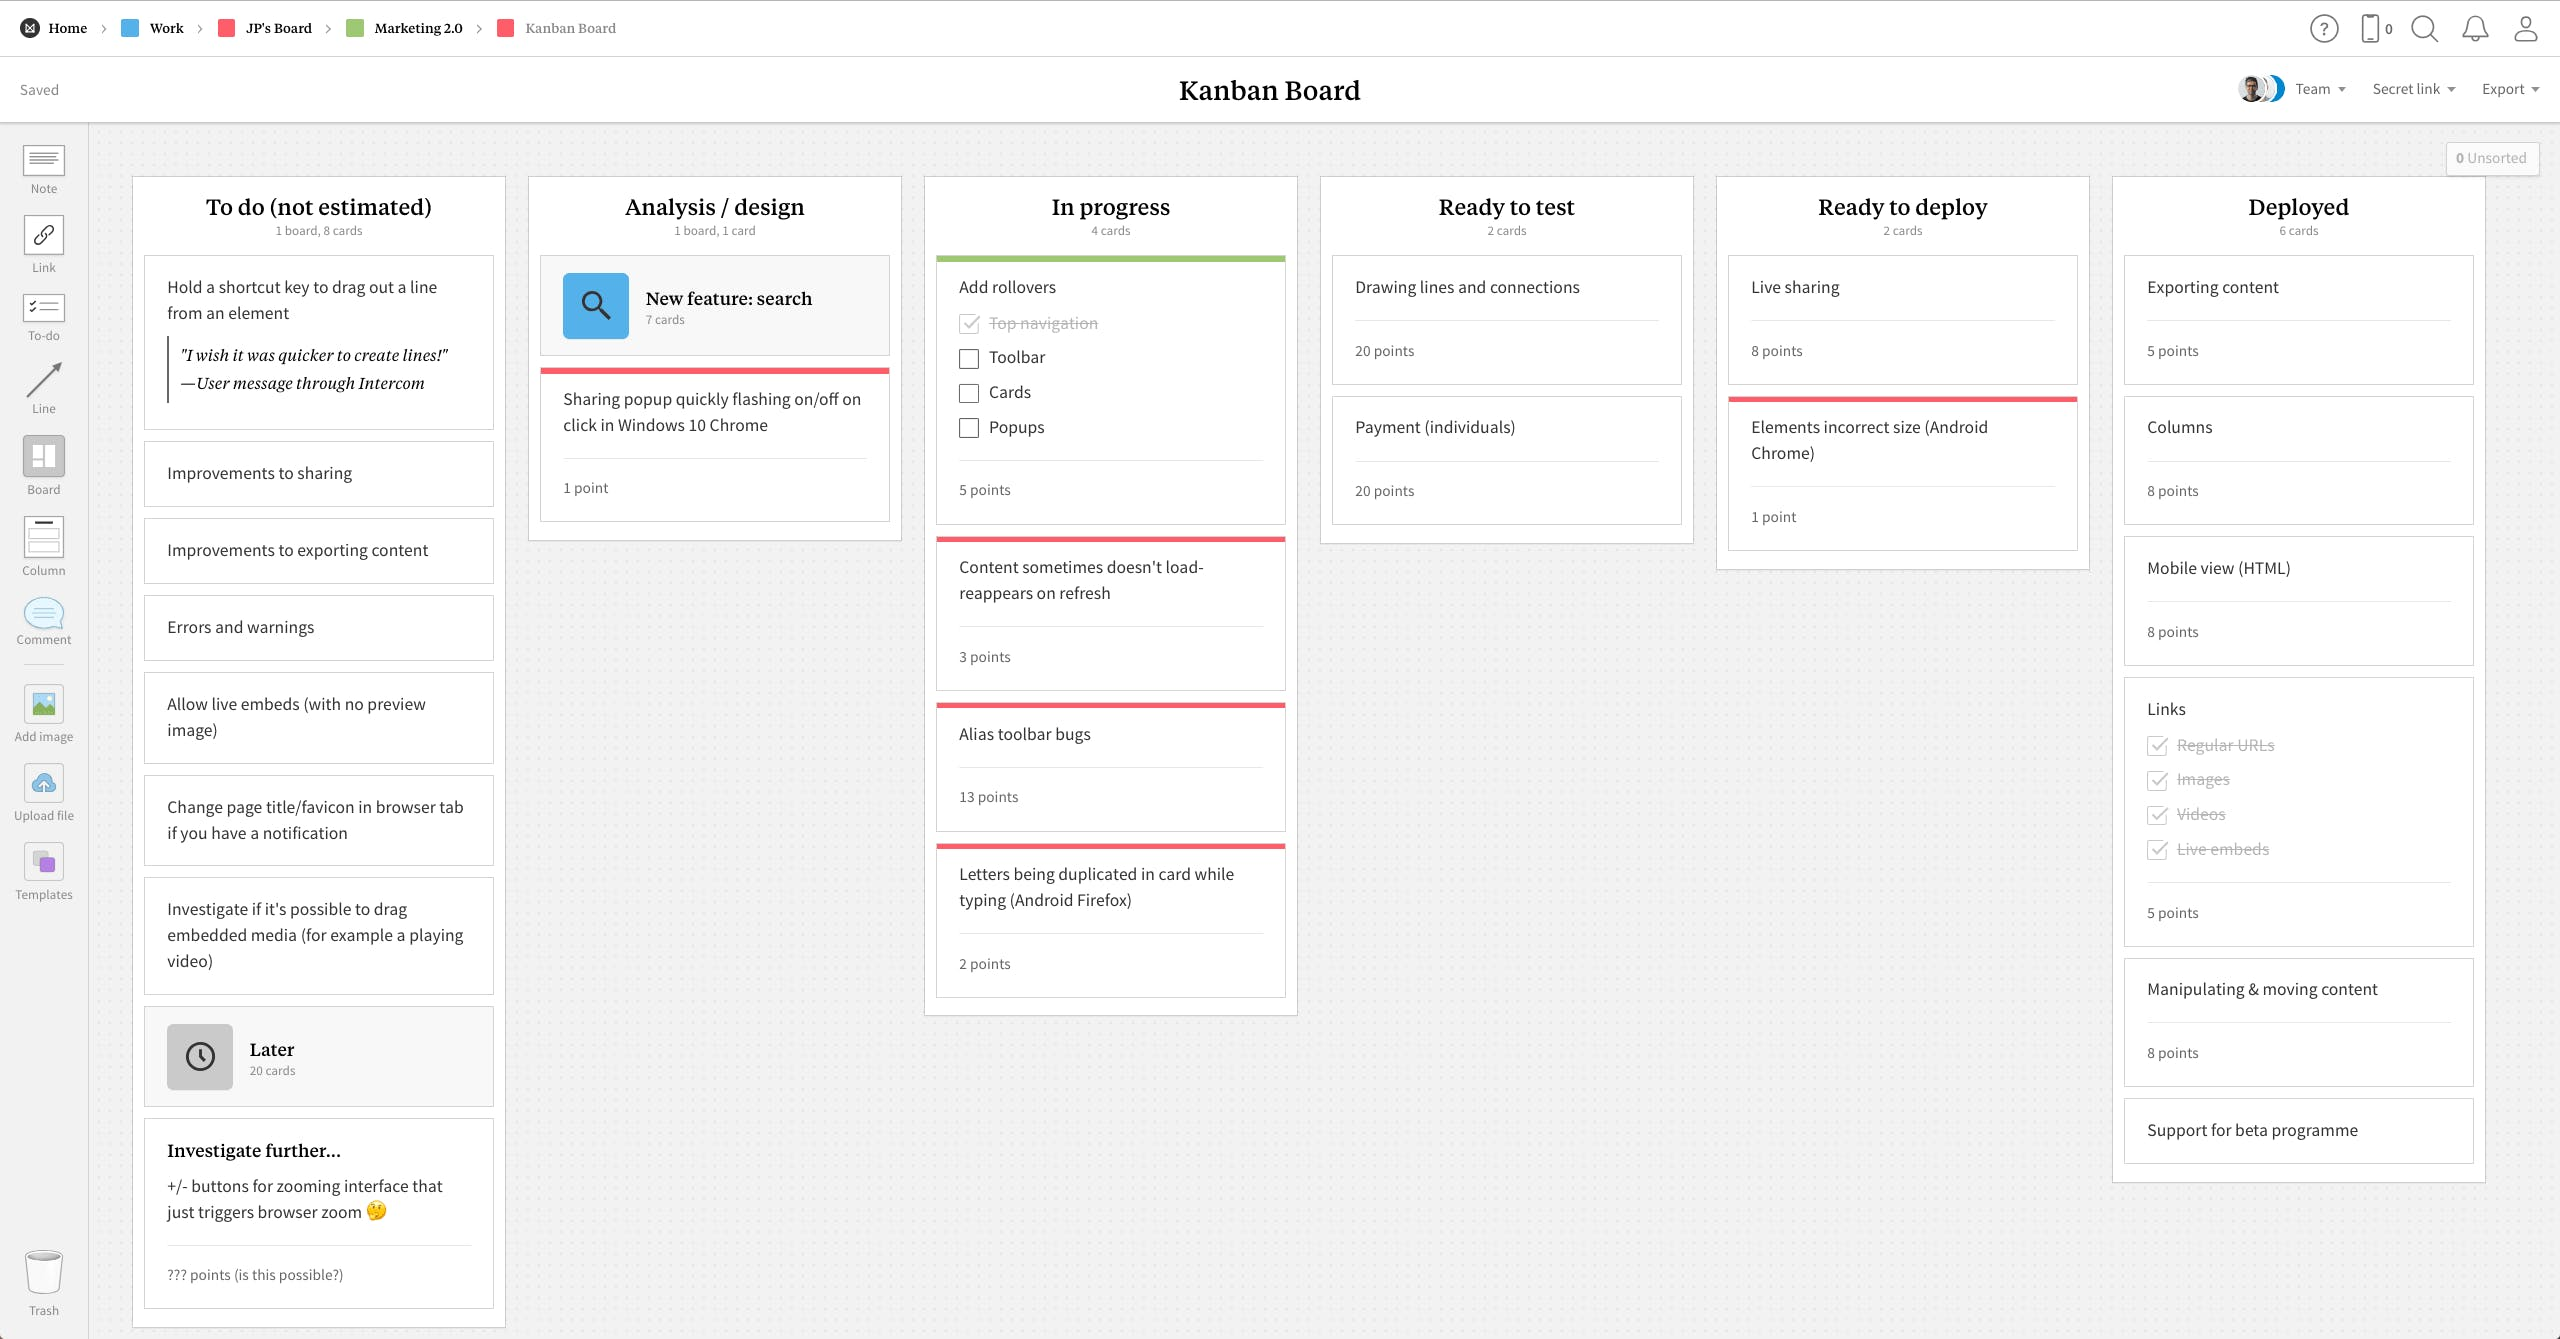 Completed Kanban Board template in Milanote app